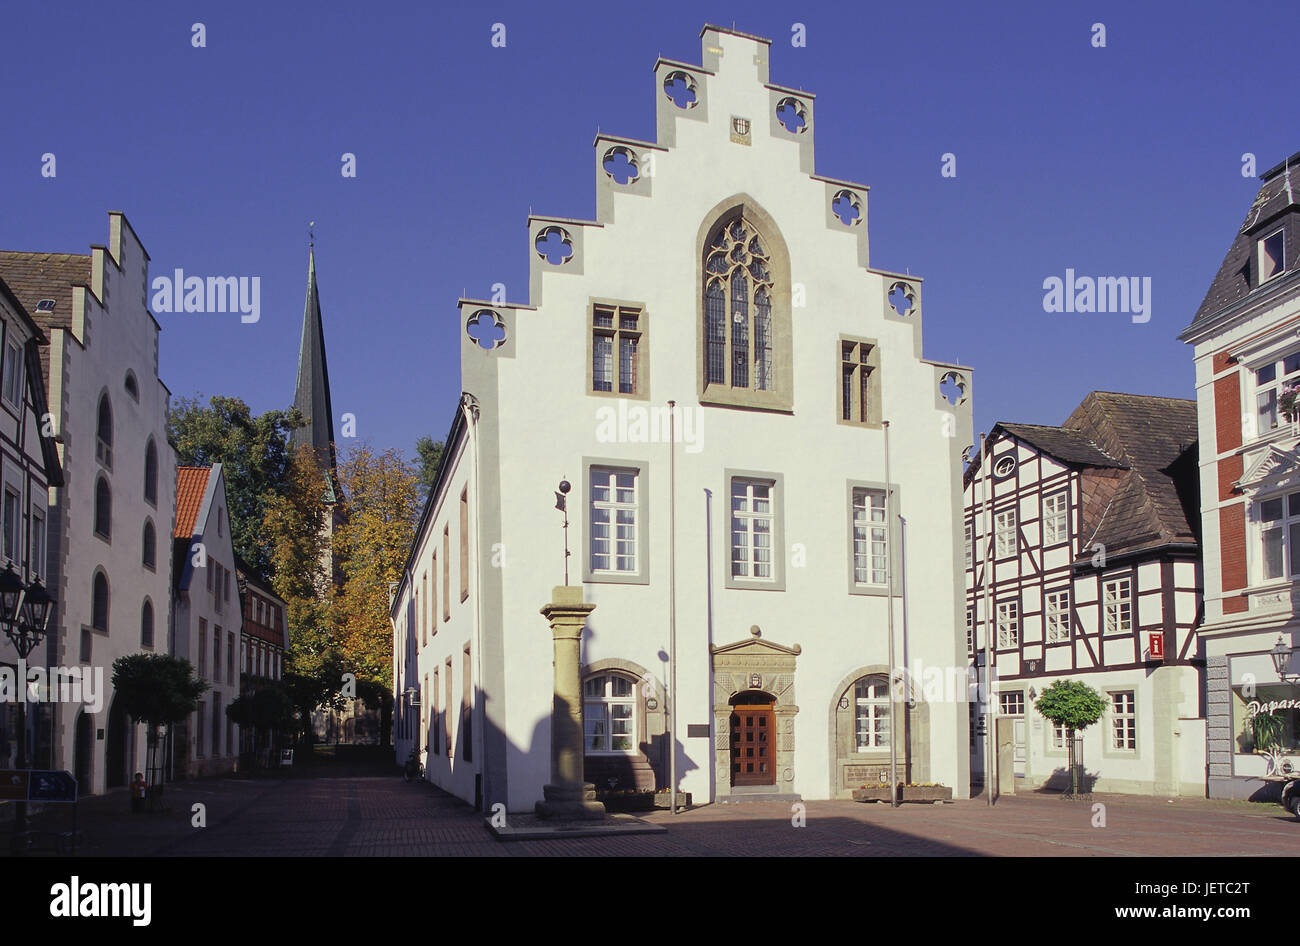 Germany, North Rhine-Westphalia, Brakel, Old Town, in the market, city hall, Teutoburger wood, Weser mountainous - Stock Image